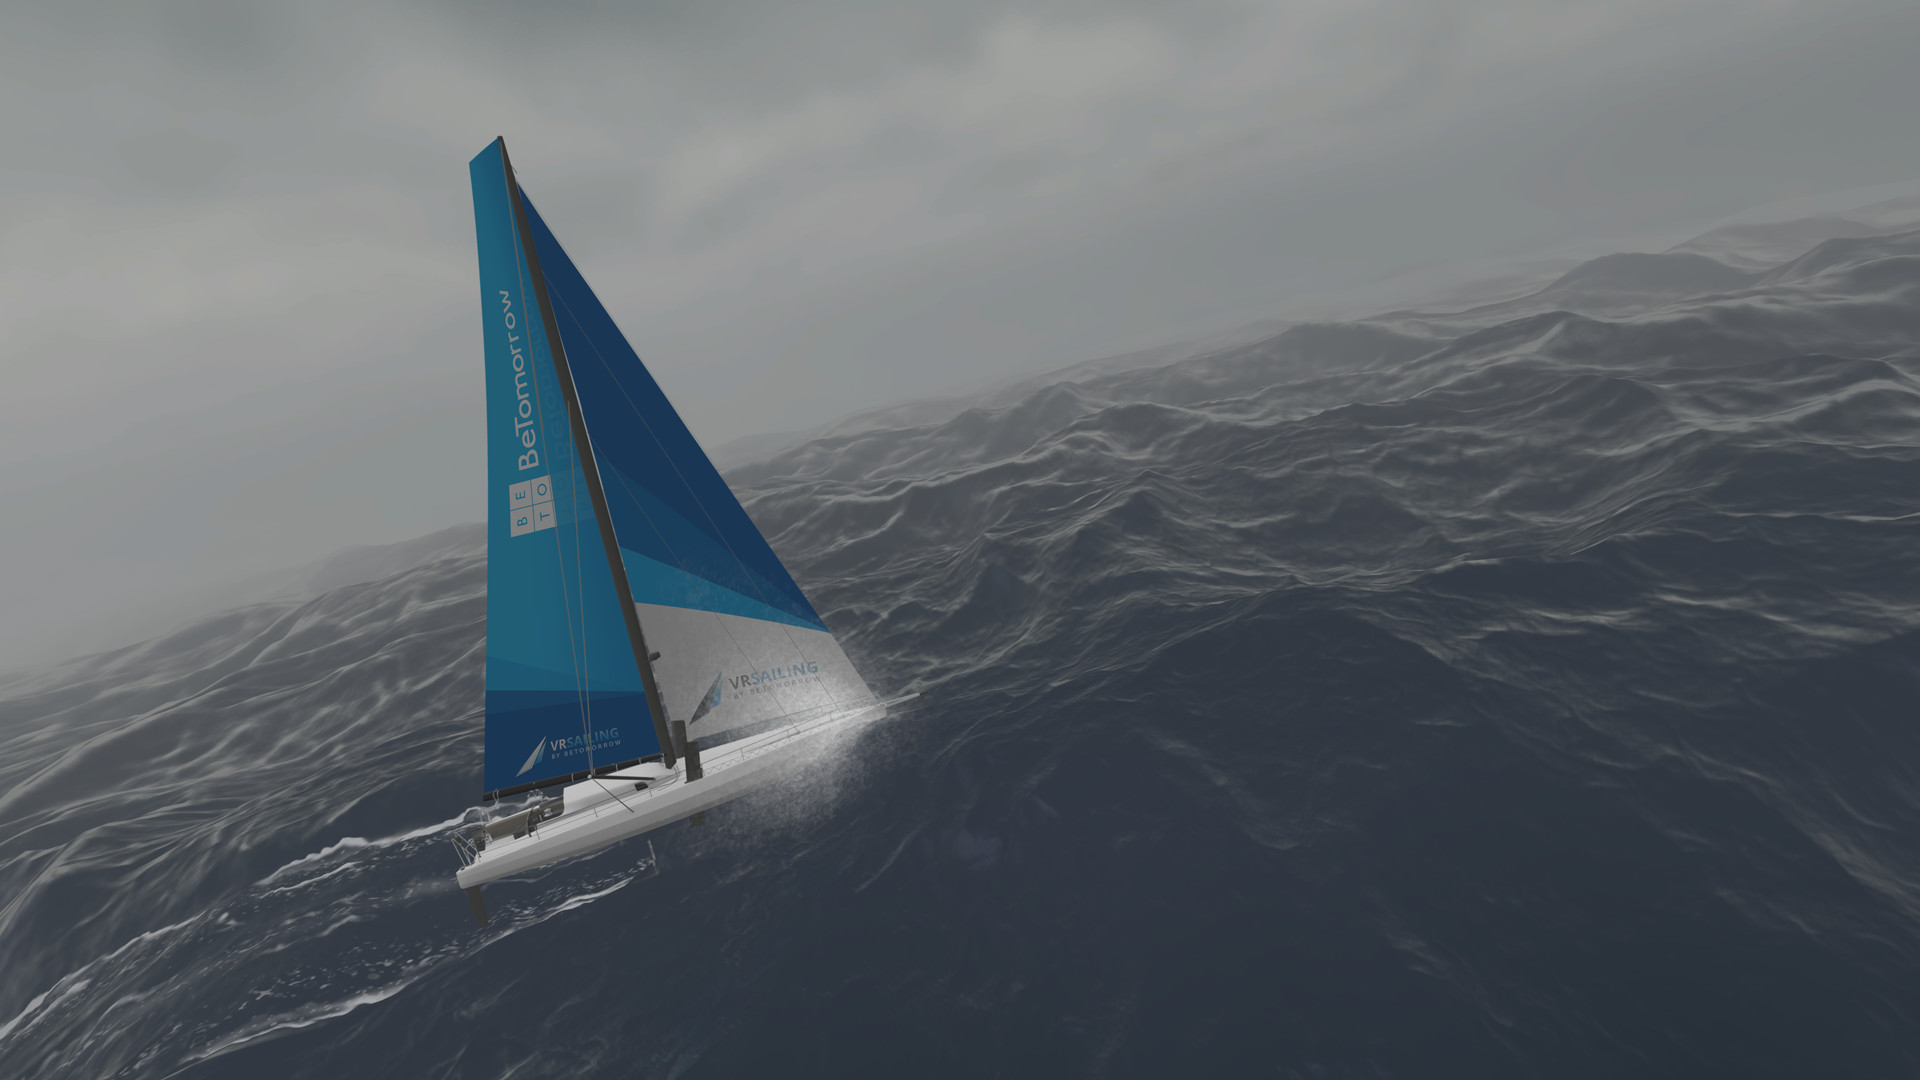 VRSailing by BeTomorrow